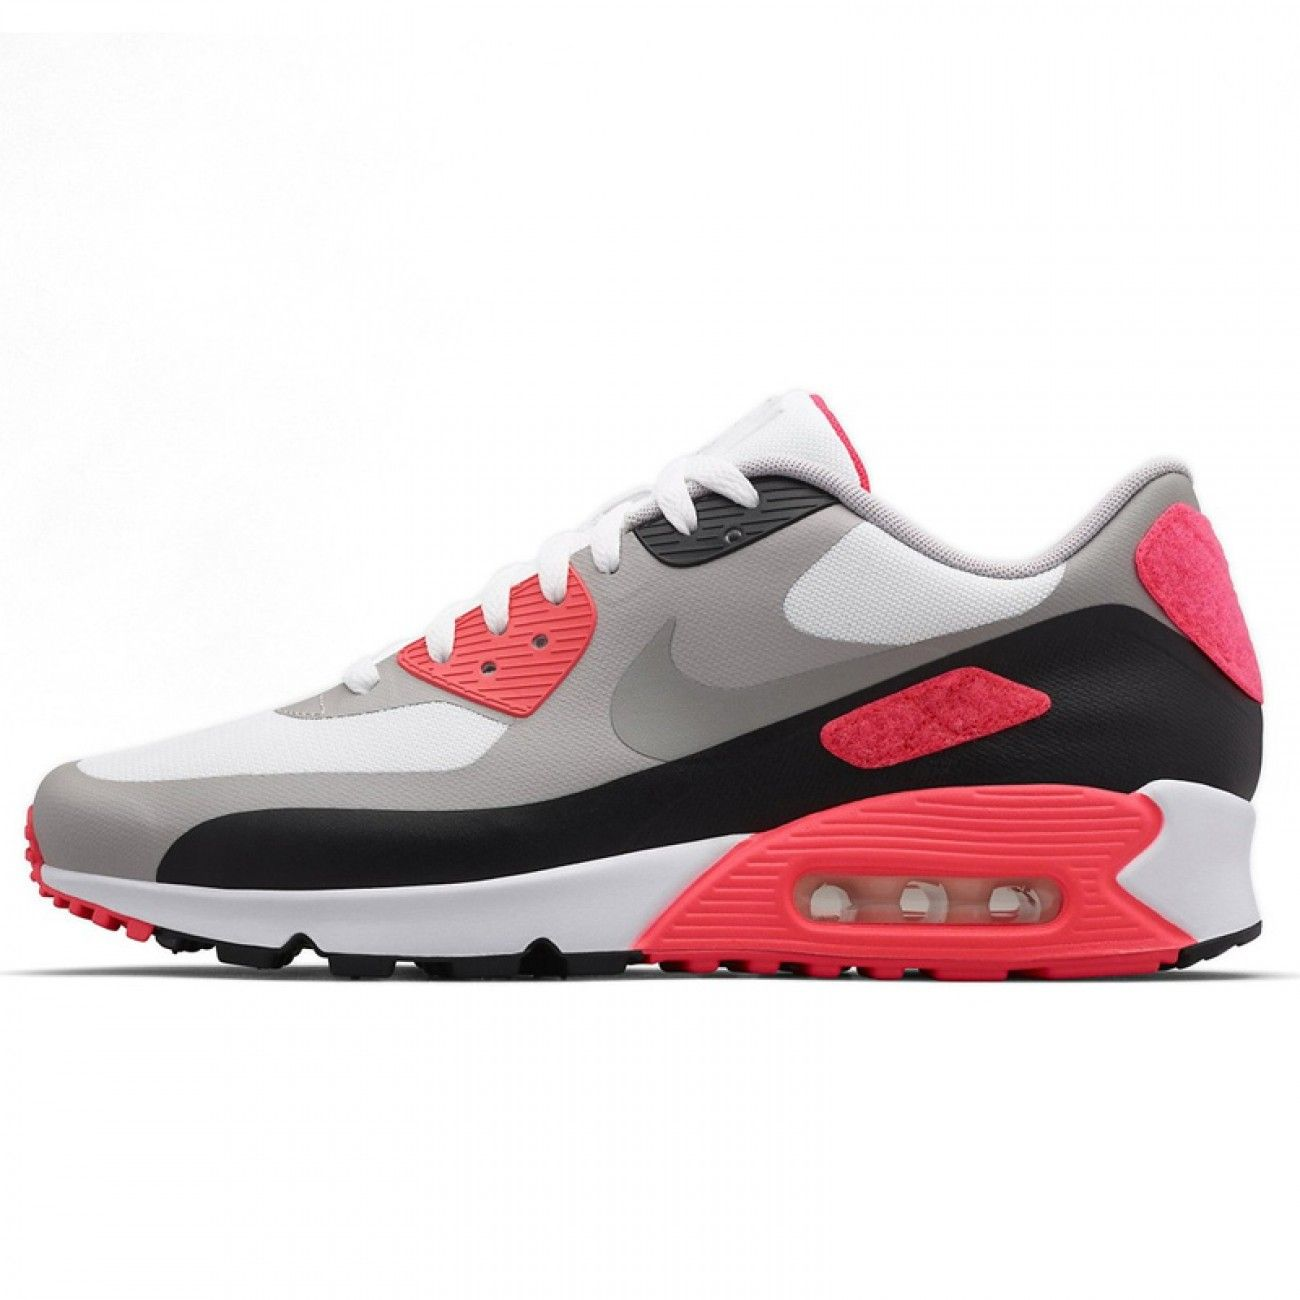 Nike Air Max 90 V Sp Patch White Cool Grey Infrared Red Shoes & Trainers  Sale at Cheap Prices.